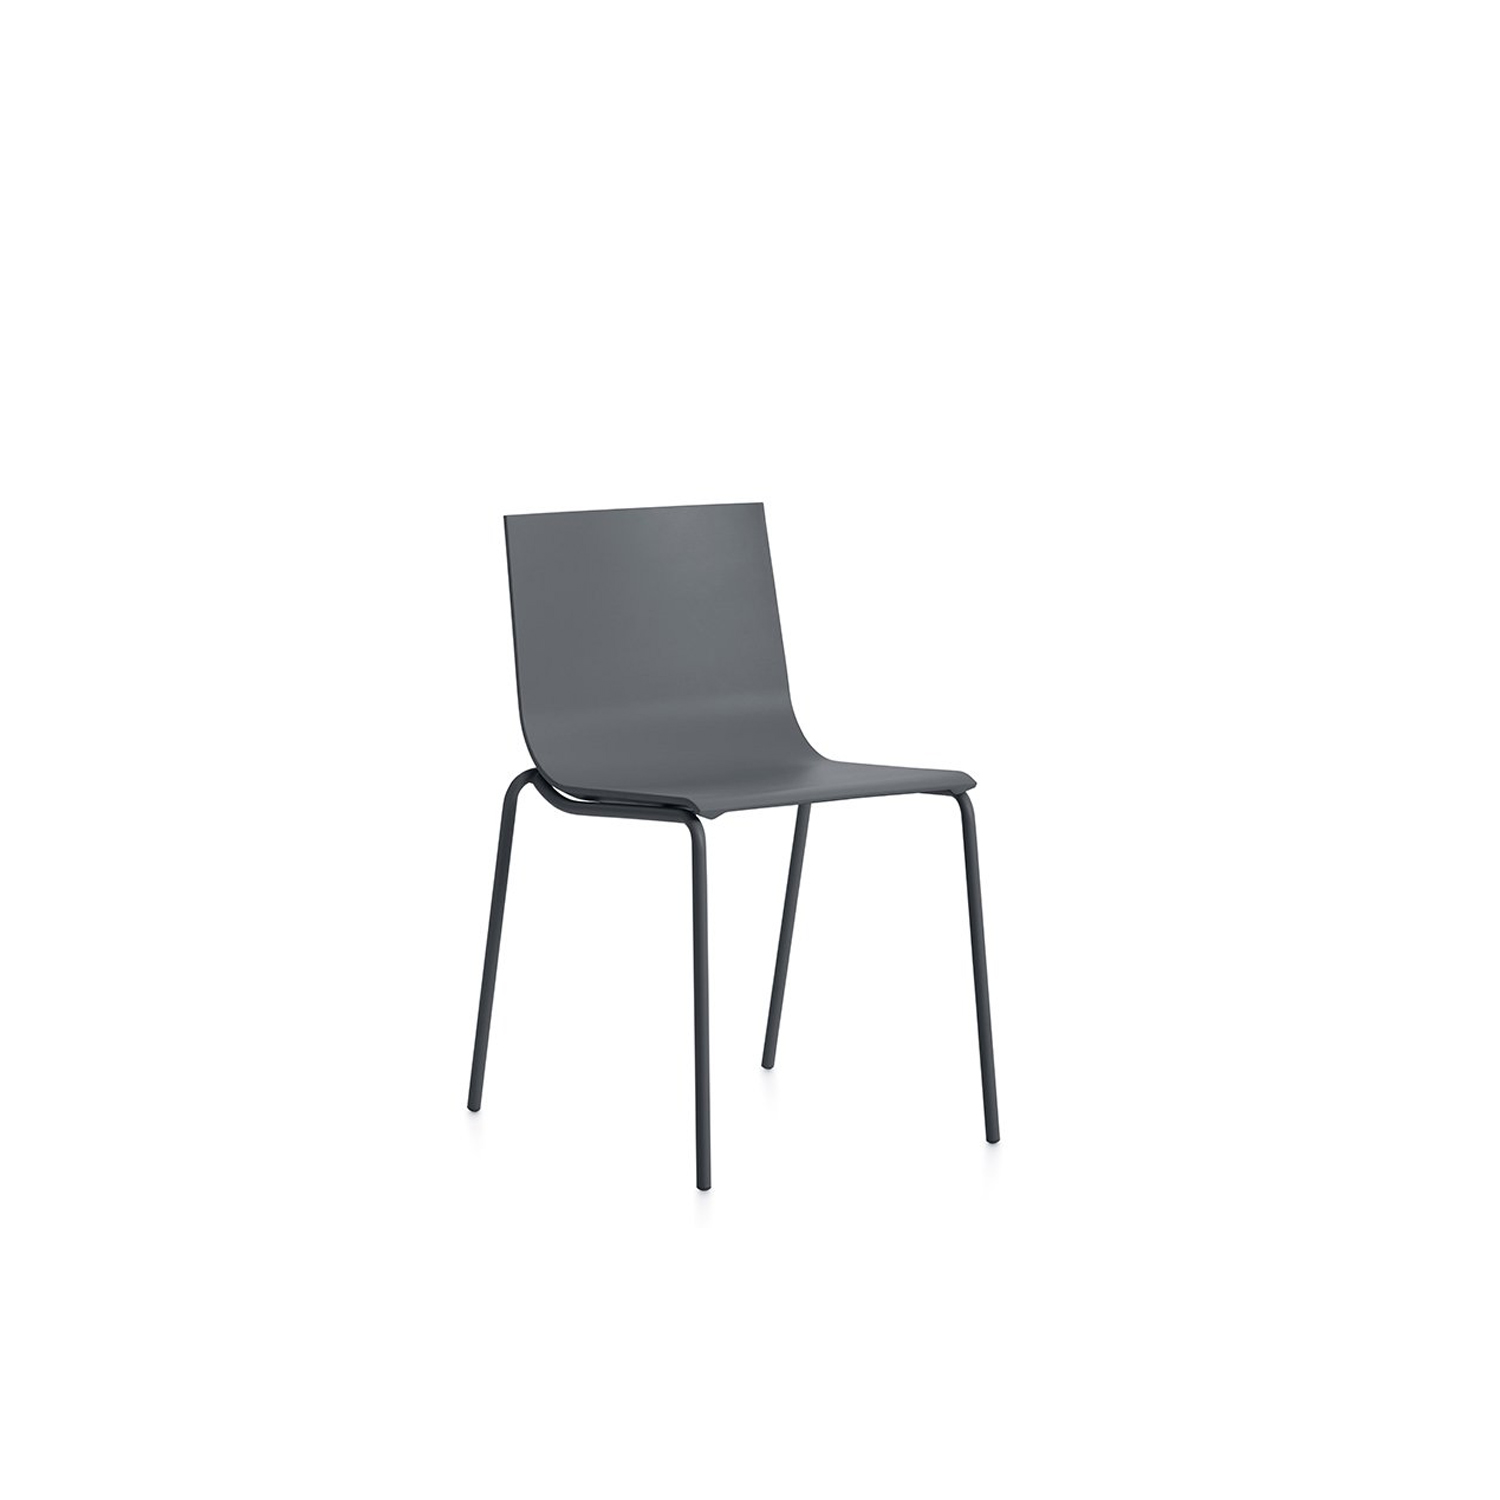 Vent Chair - The Vent outdoor chair is an item that seems to change its appearance depending on the colour you choose. In neutral tones like white, light grey or anthracite, it comes across as a discreet, sober, elegant design. But in colours like pink, red, blue or yellow it can become that colourful, fun item that's clamouring to be noticed.  | Matter of Stuff